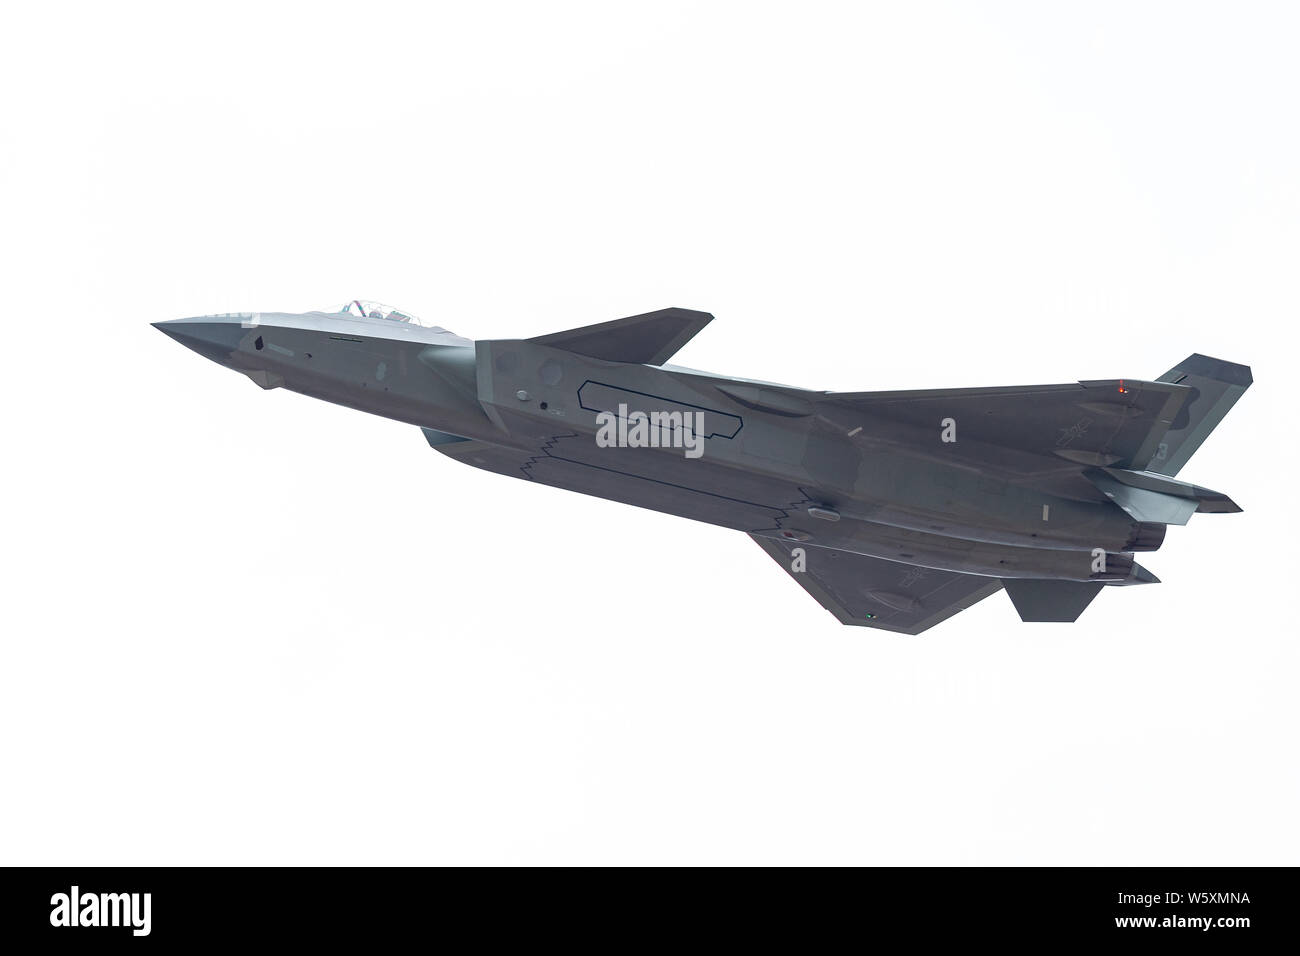 A J-20 stealth fighter jet of the Chinese People's Liberation Army